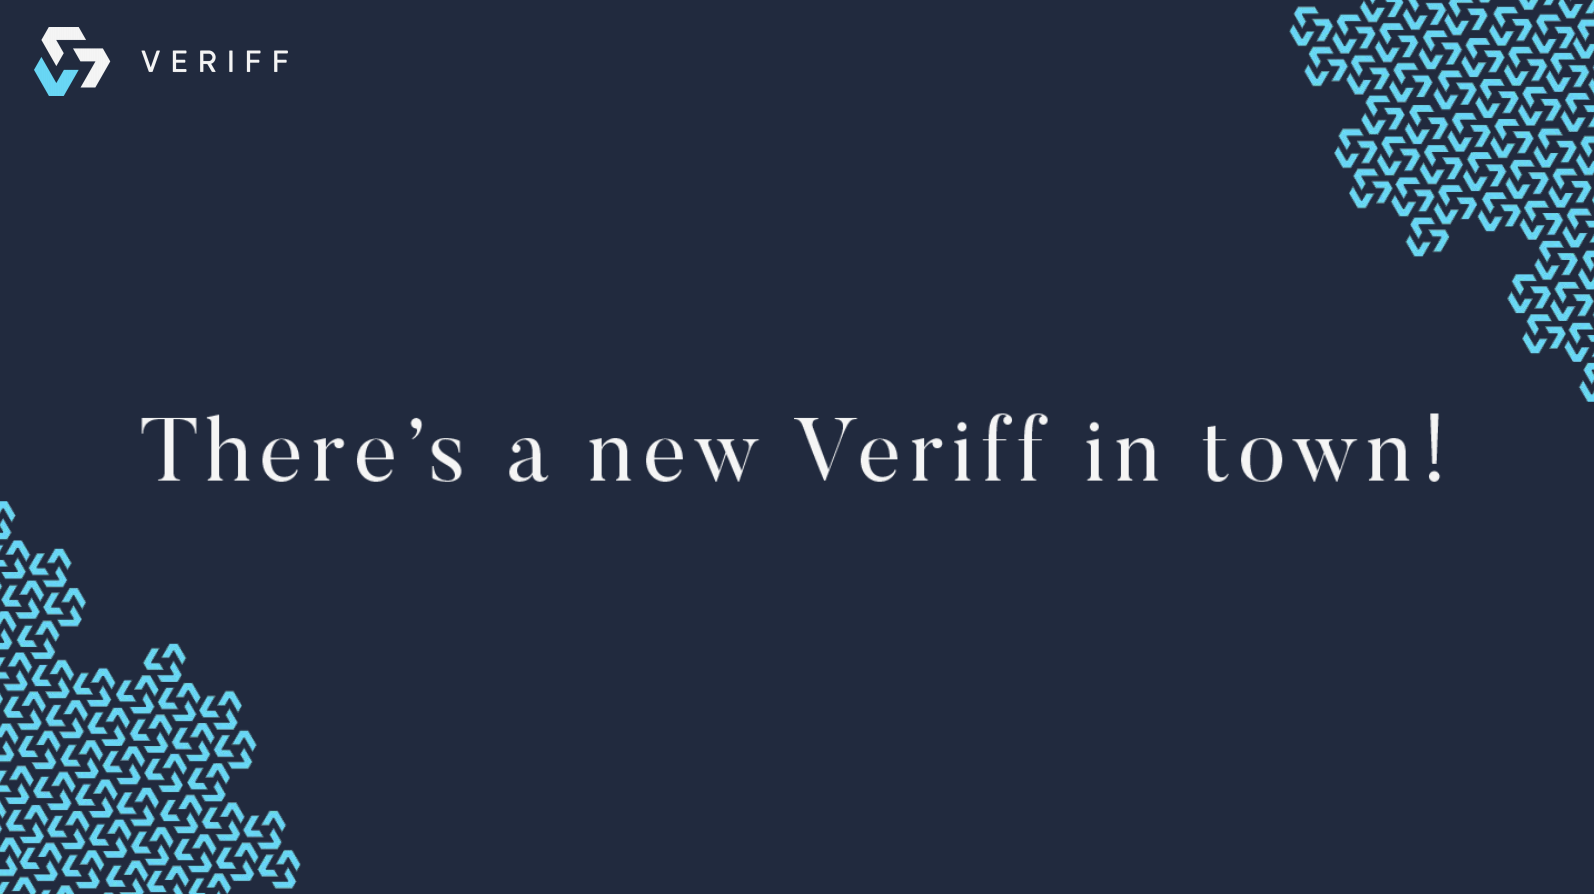 The turn of 2018 was quite exciting for Veriff & LIFT99, both. Things took off and haven't cooled down since.